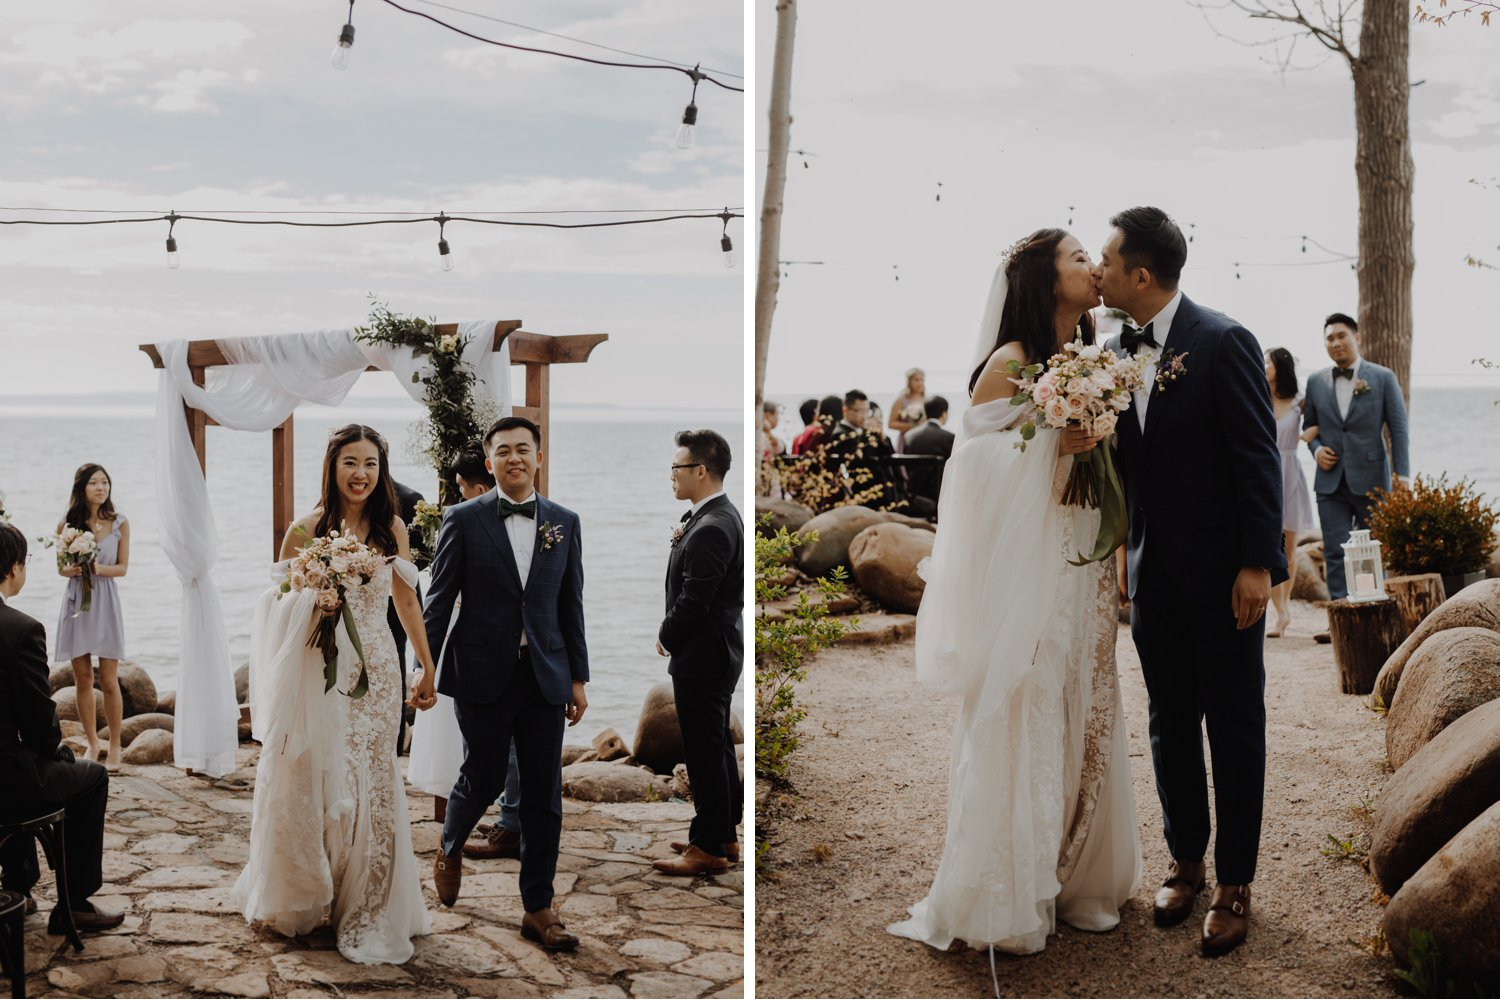 Serenity Cottage Wedding - newlyweds walking down the aisle and kissing